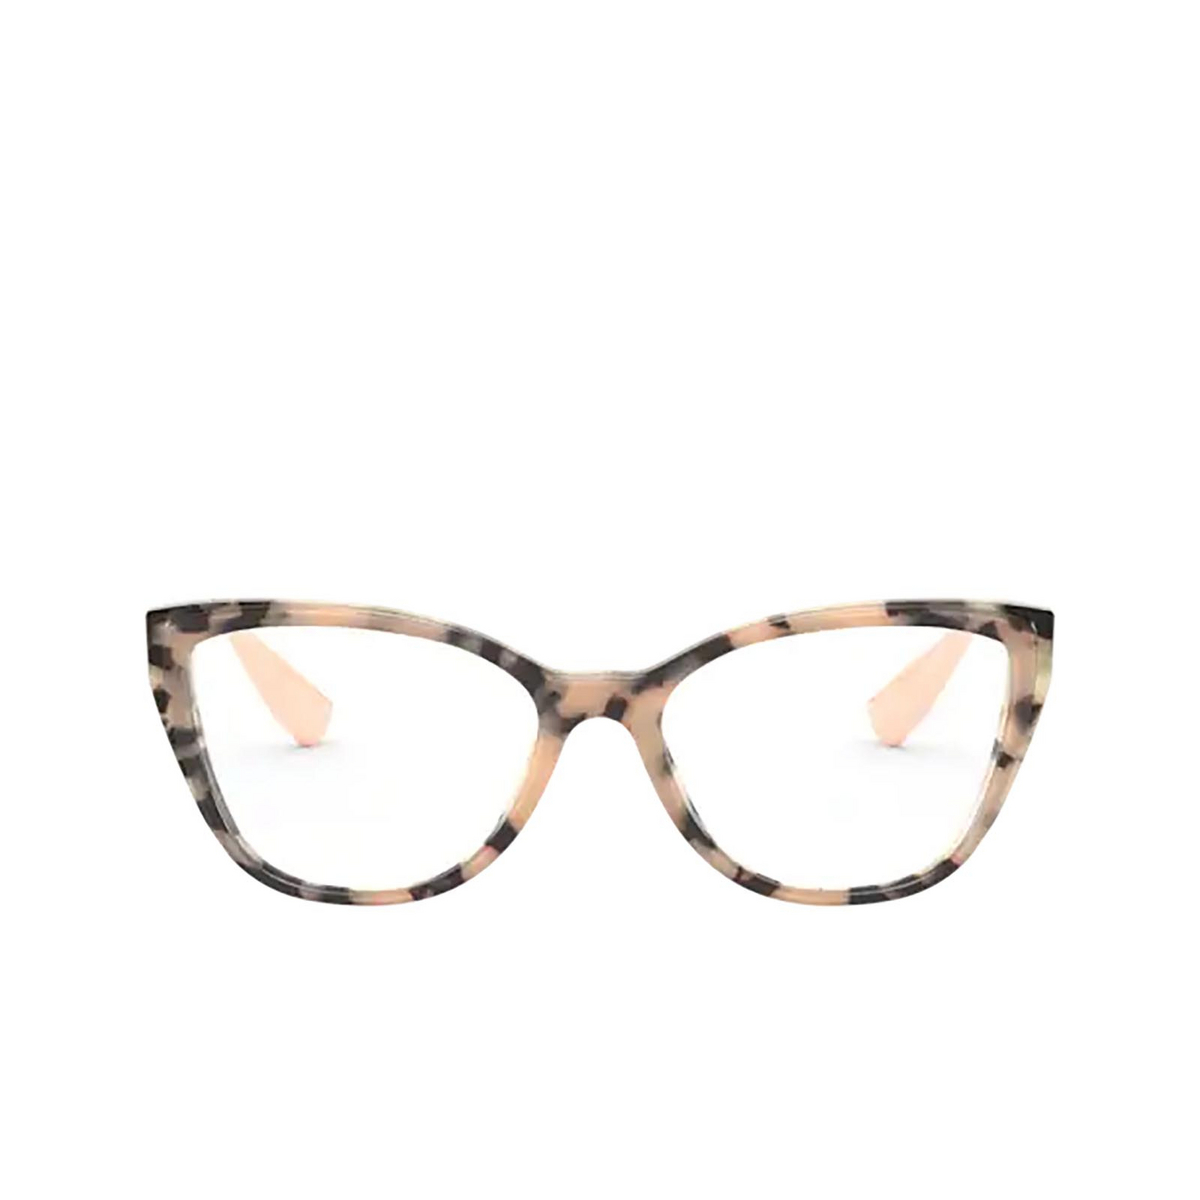 Miu Miu® Butterfly Eyeglasses: Core Collection MU 04SV color Havana Pink On Top 07D1O1 - front view.